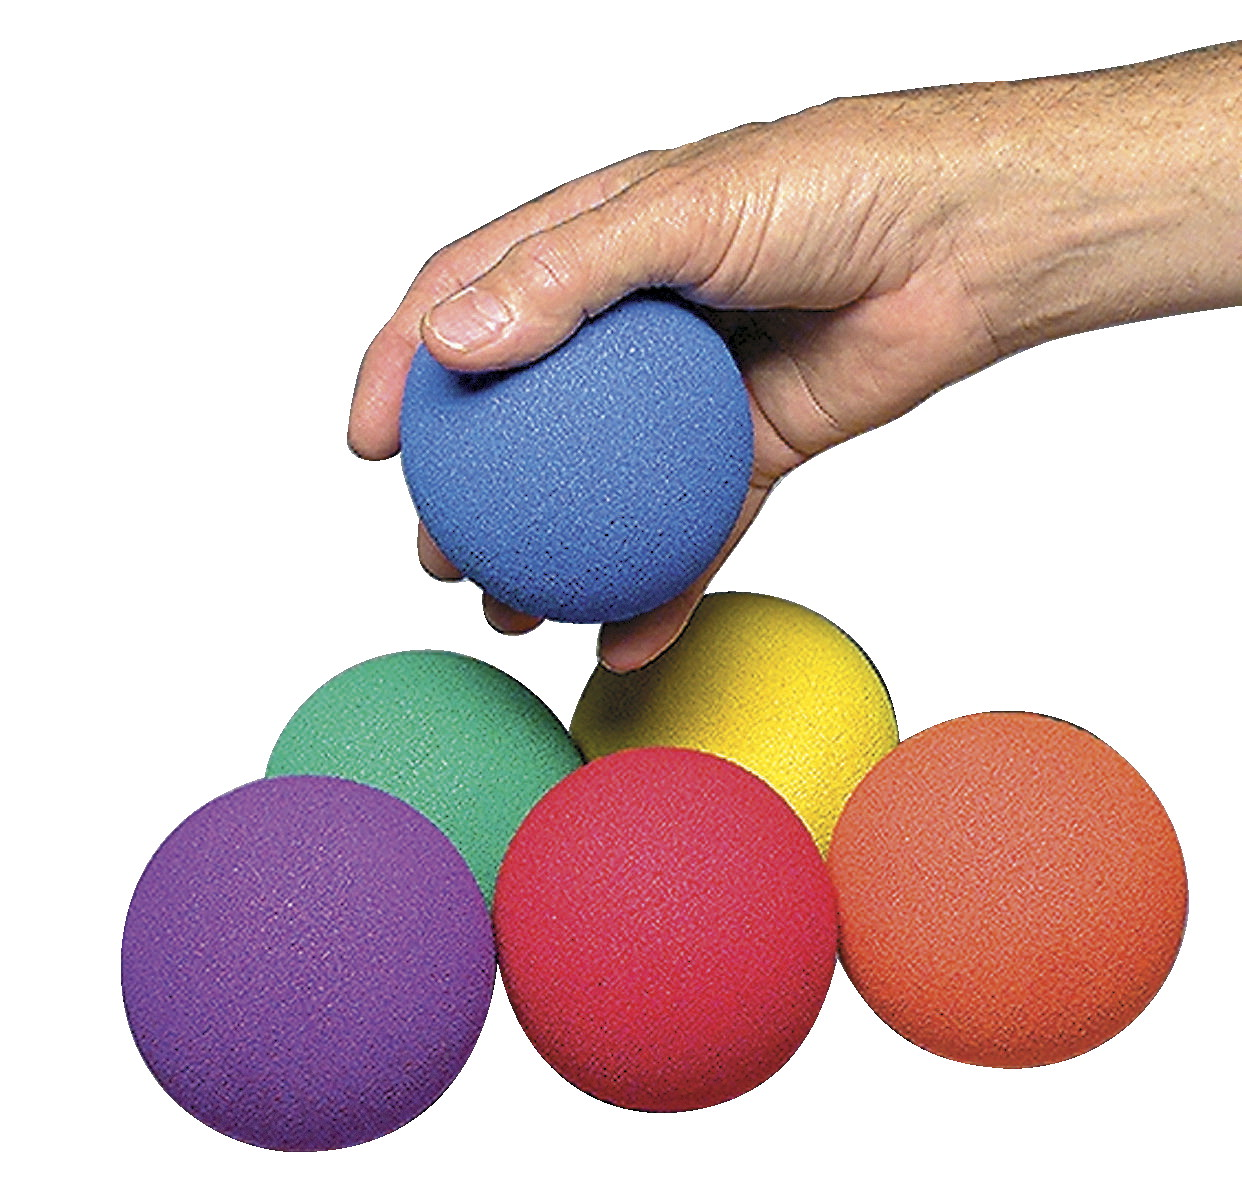 Sportime UltraFoam NoBounceBalls, 3-1/2 Inches, Assorted Colors, Set of 6